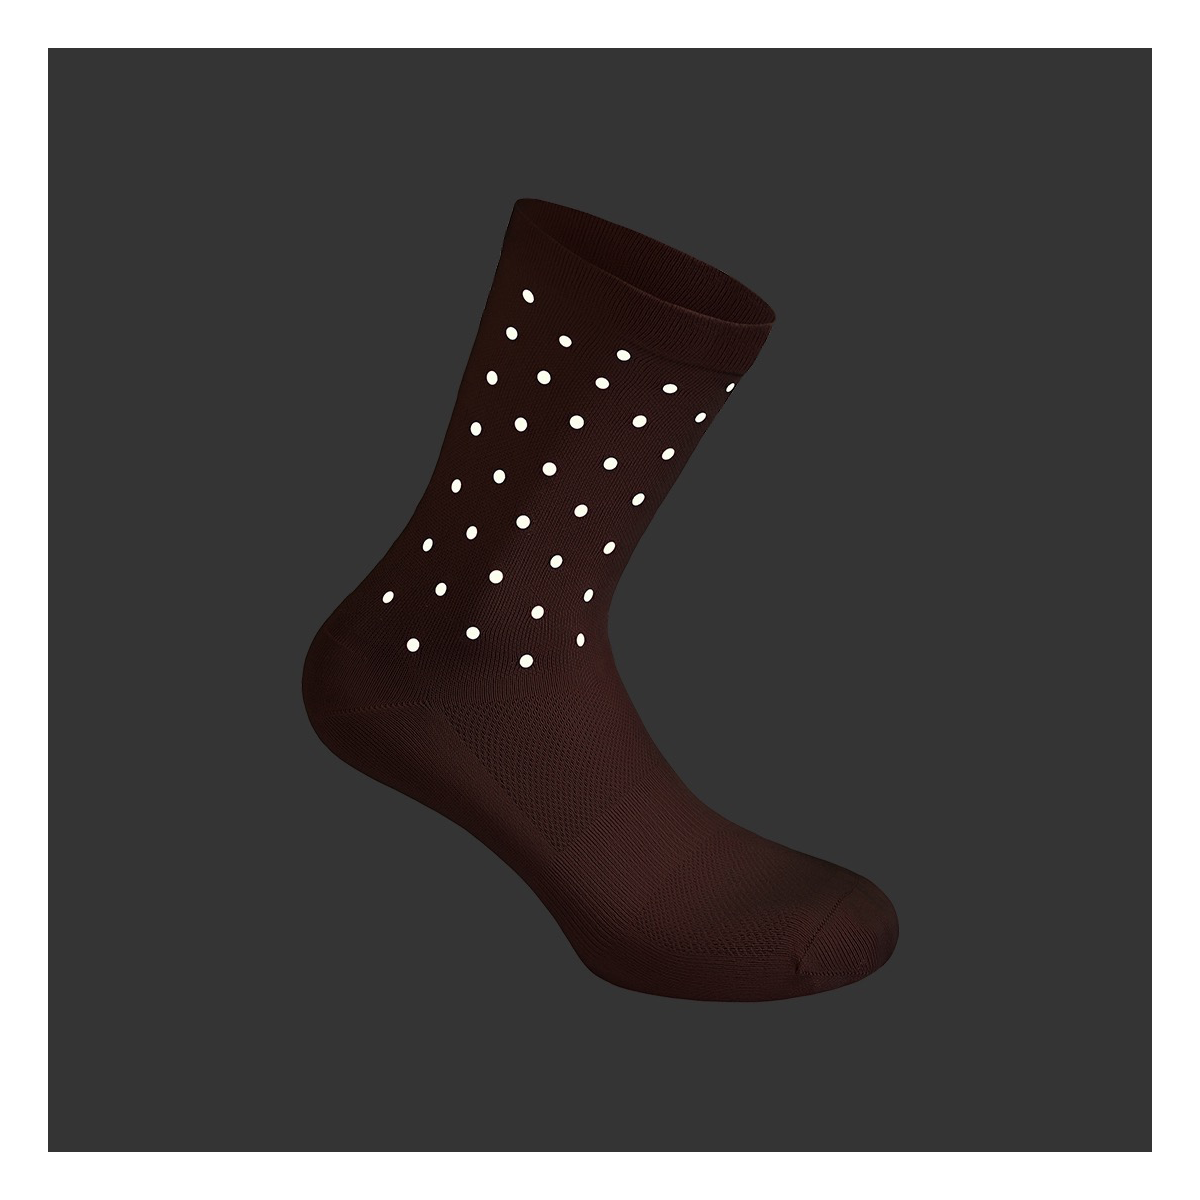 Reflective Crossing Dots Socks